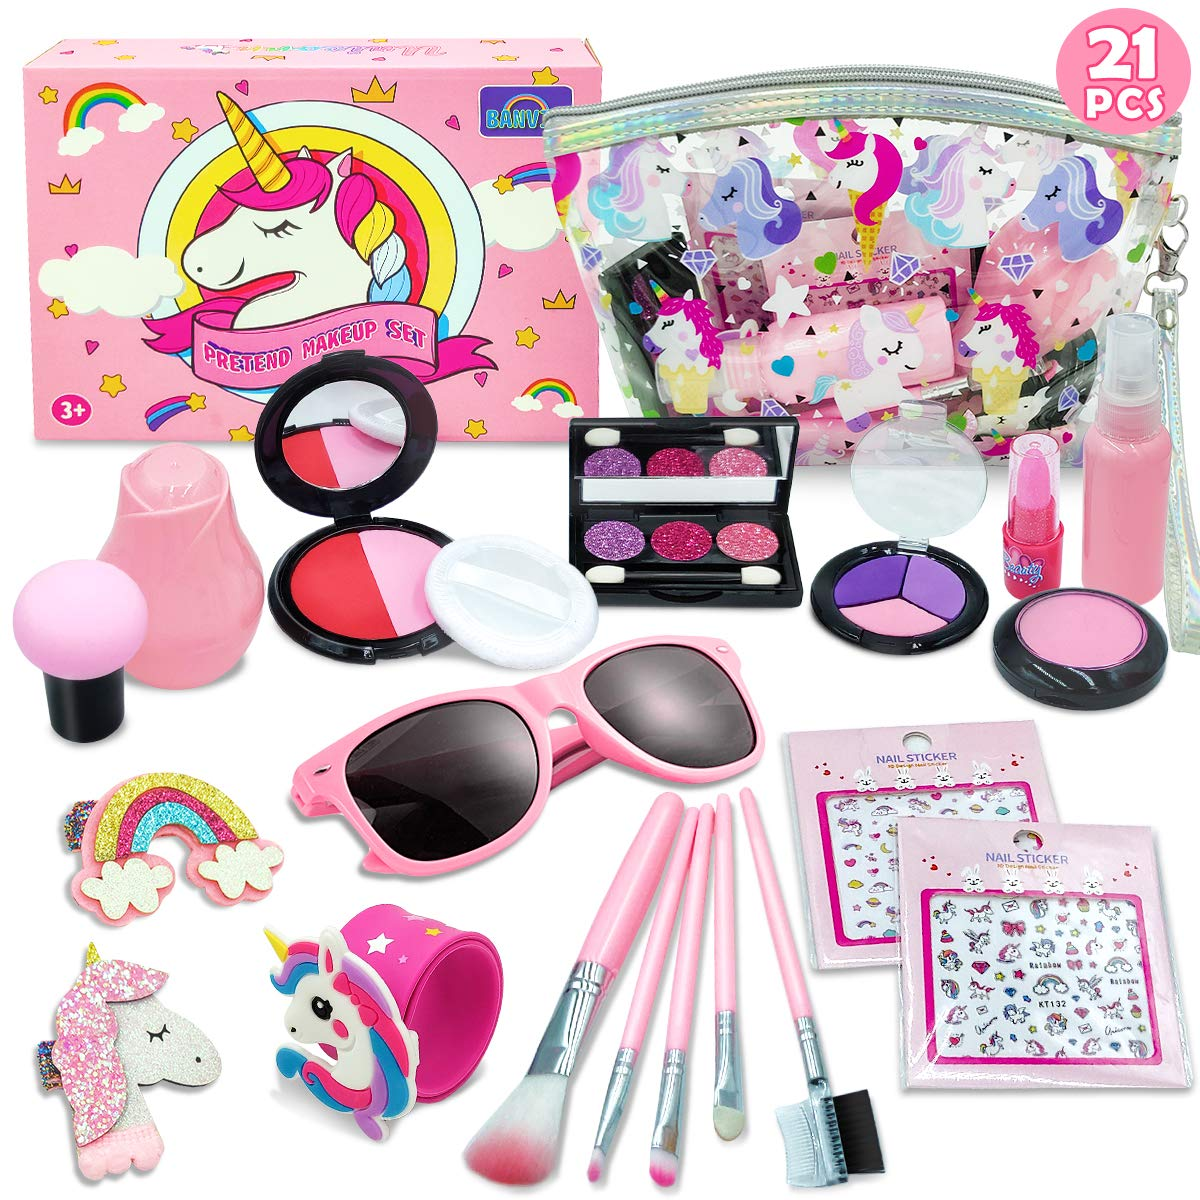 Banvih - Play Makeup for Girls - 21 Piece Pretend Makeup for Girls - My First Purse Kid Makeup Kit for Girls and Toddlers with Unicorn Cosmetic Bag by Banvih